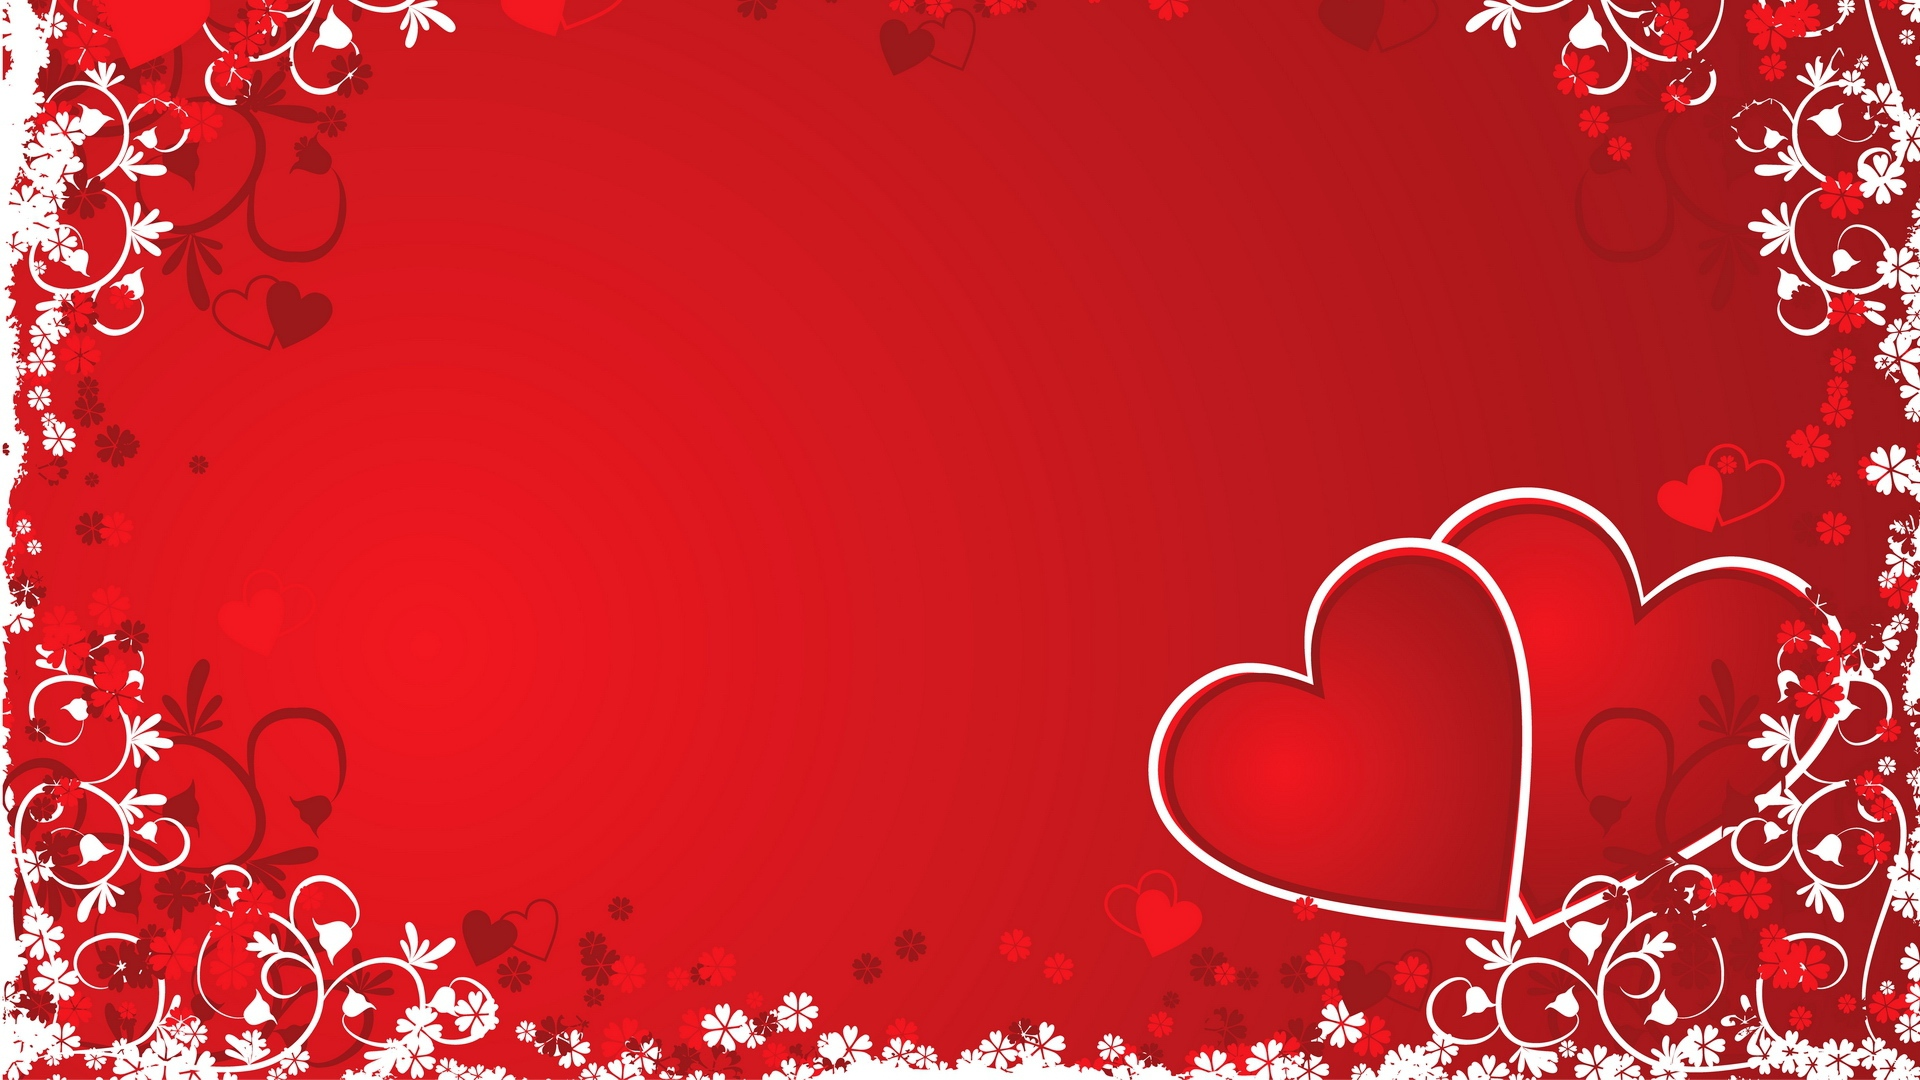 Download Wallpaper 1920x1080 Heart, Picture, Letter